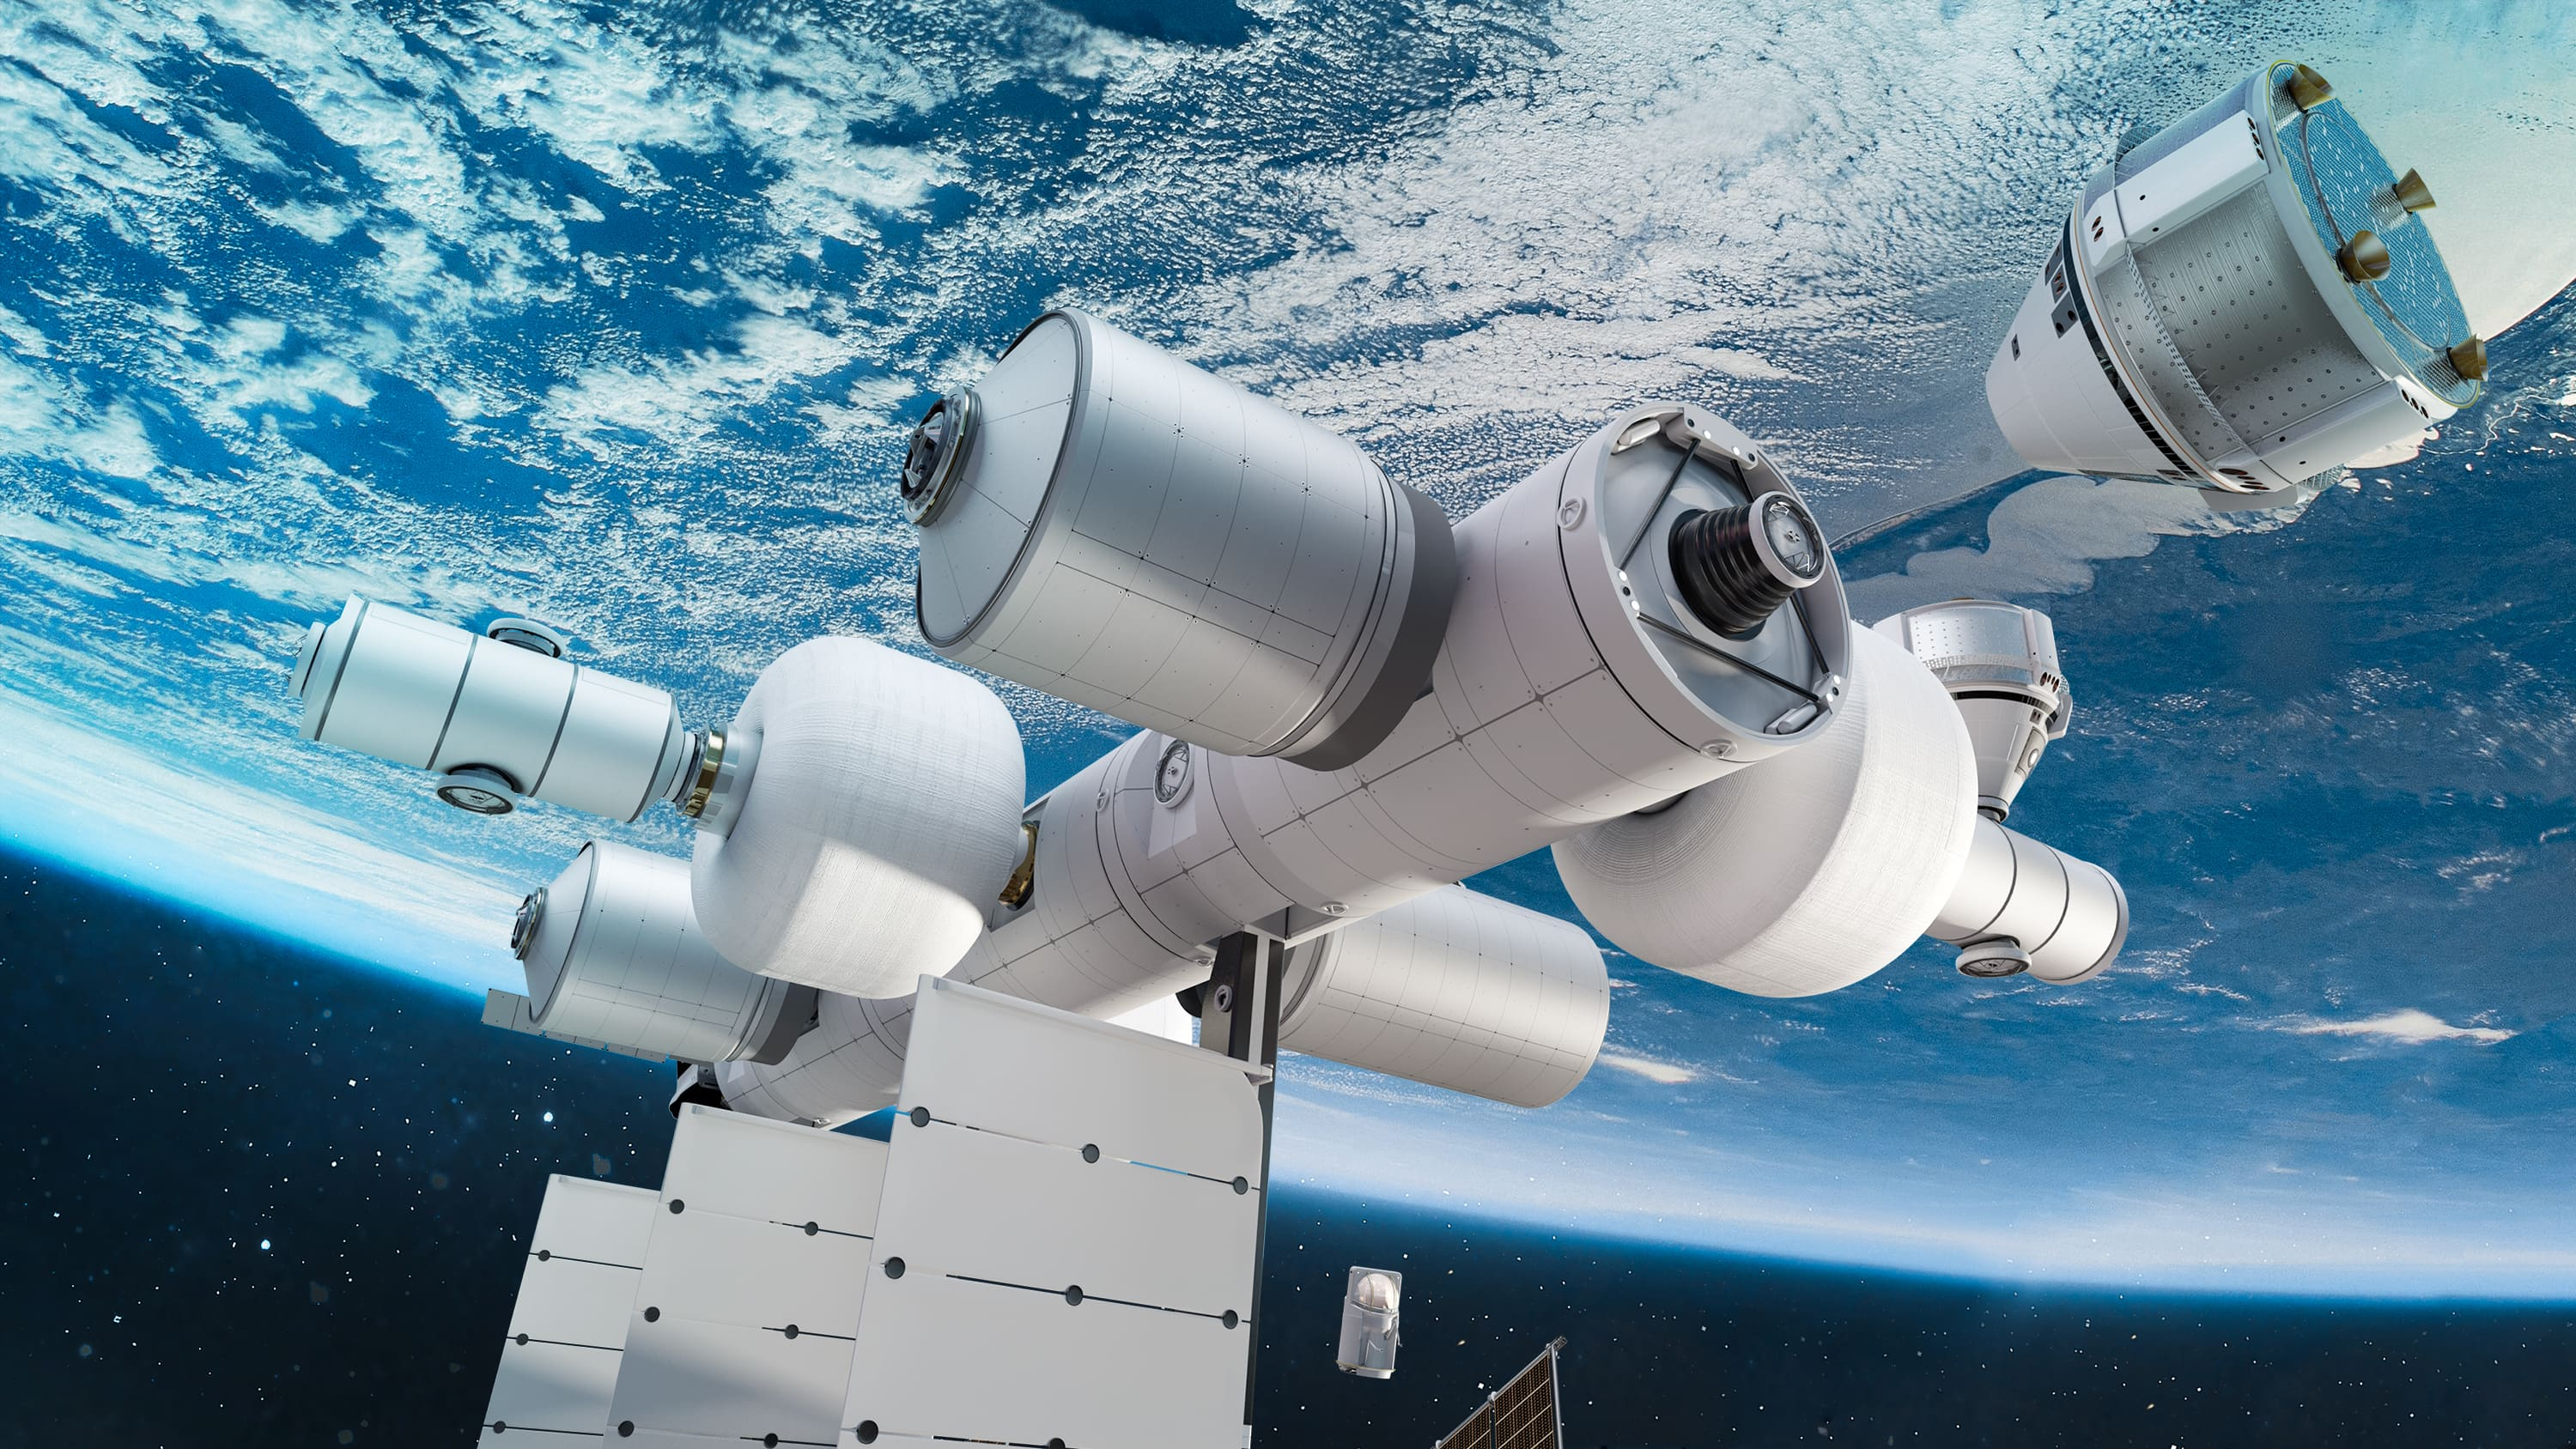 Bezos' Blue Origin unveils private space station 'business park' to be deployed later this decade